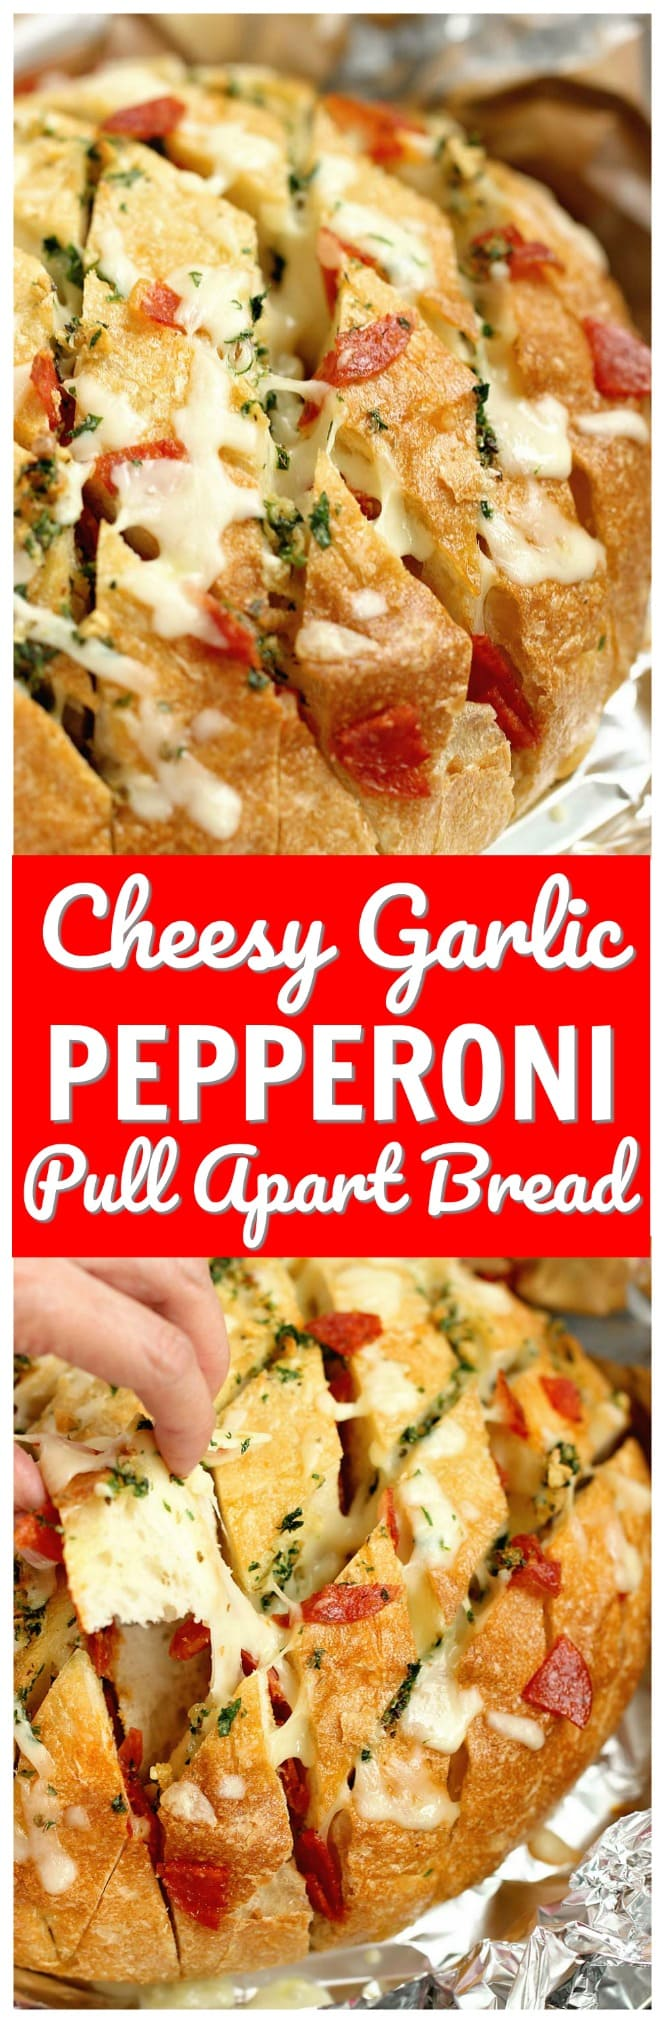 Cheesy Pepperoni Garlic Pull Apart Bread is a packed with tons of garlic herb flavor and makes the perfect appetizer and snack idea!